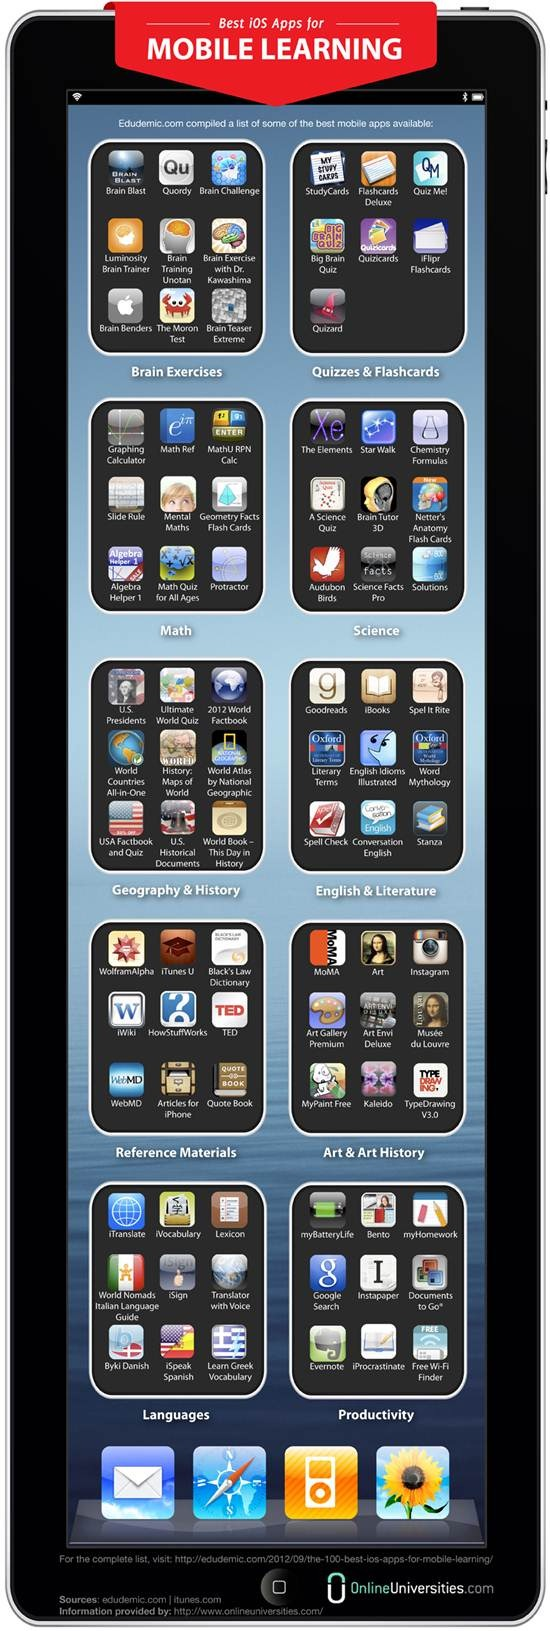 Best iOS Apps for Mobile Learning 2